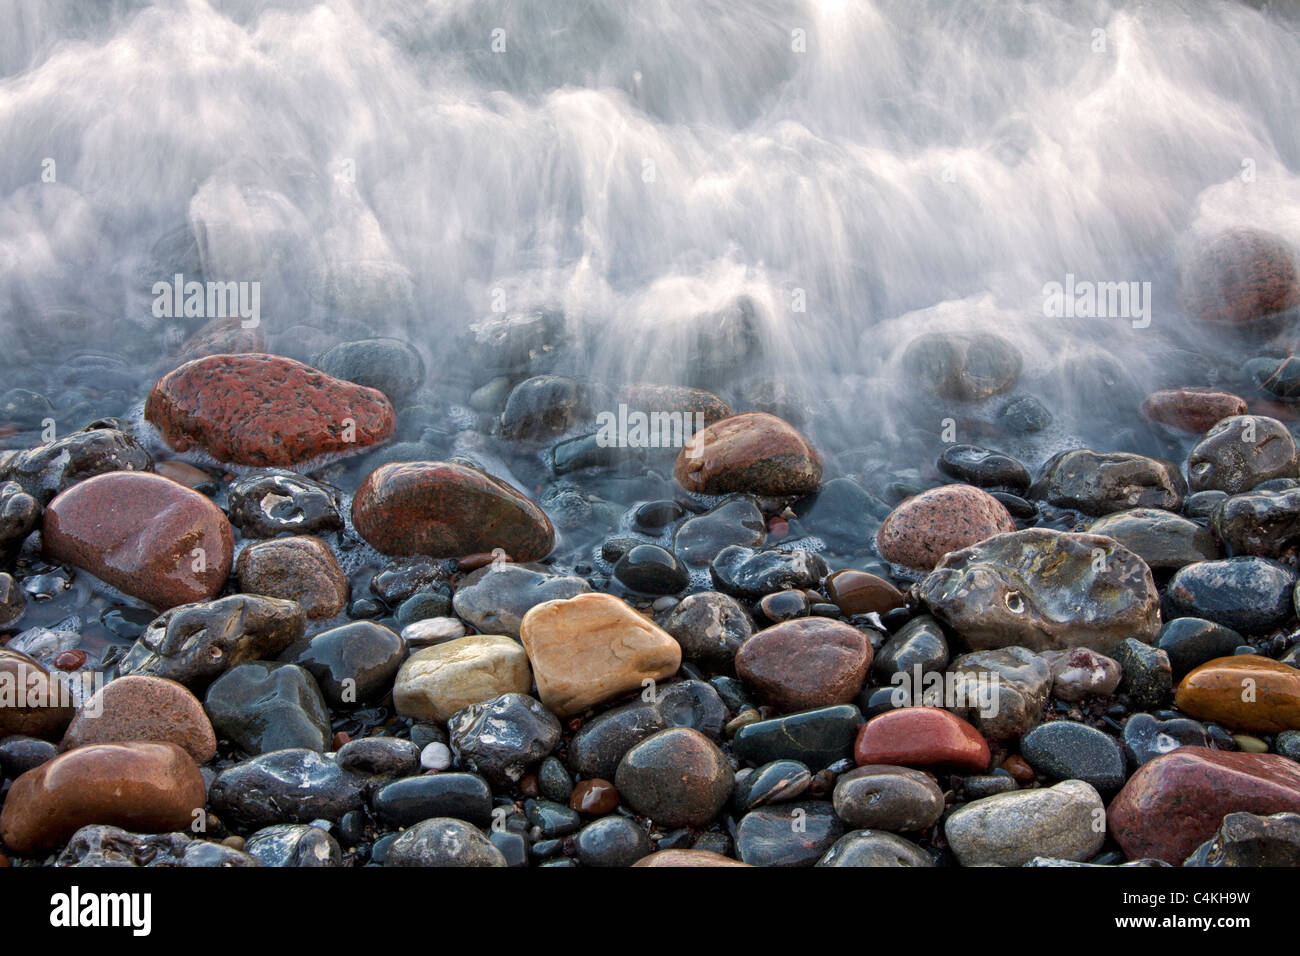 Pebbles on beach in the surf at low tide, Germany - Stock Image